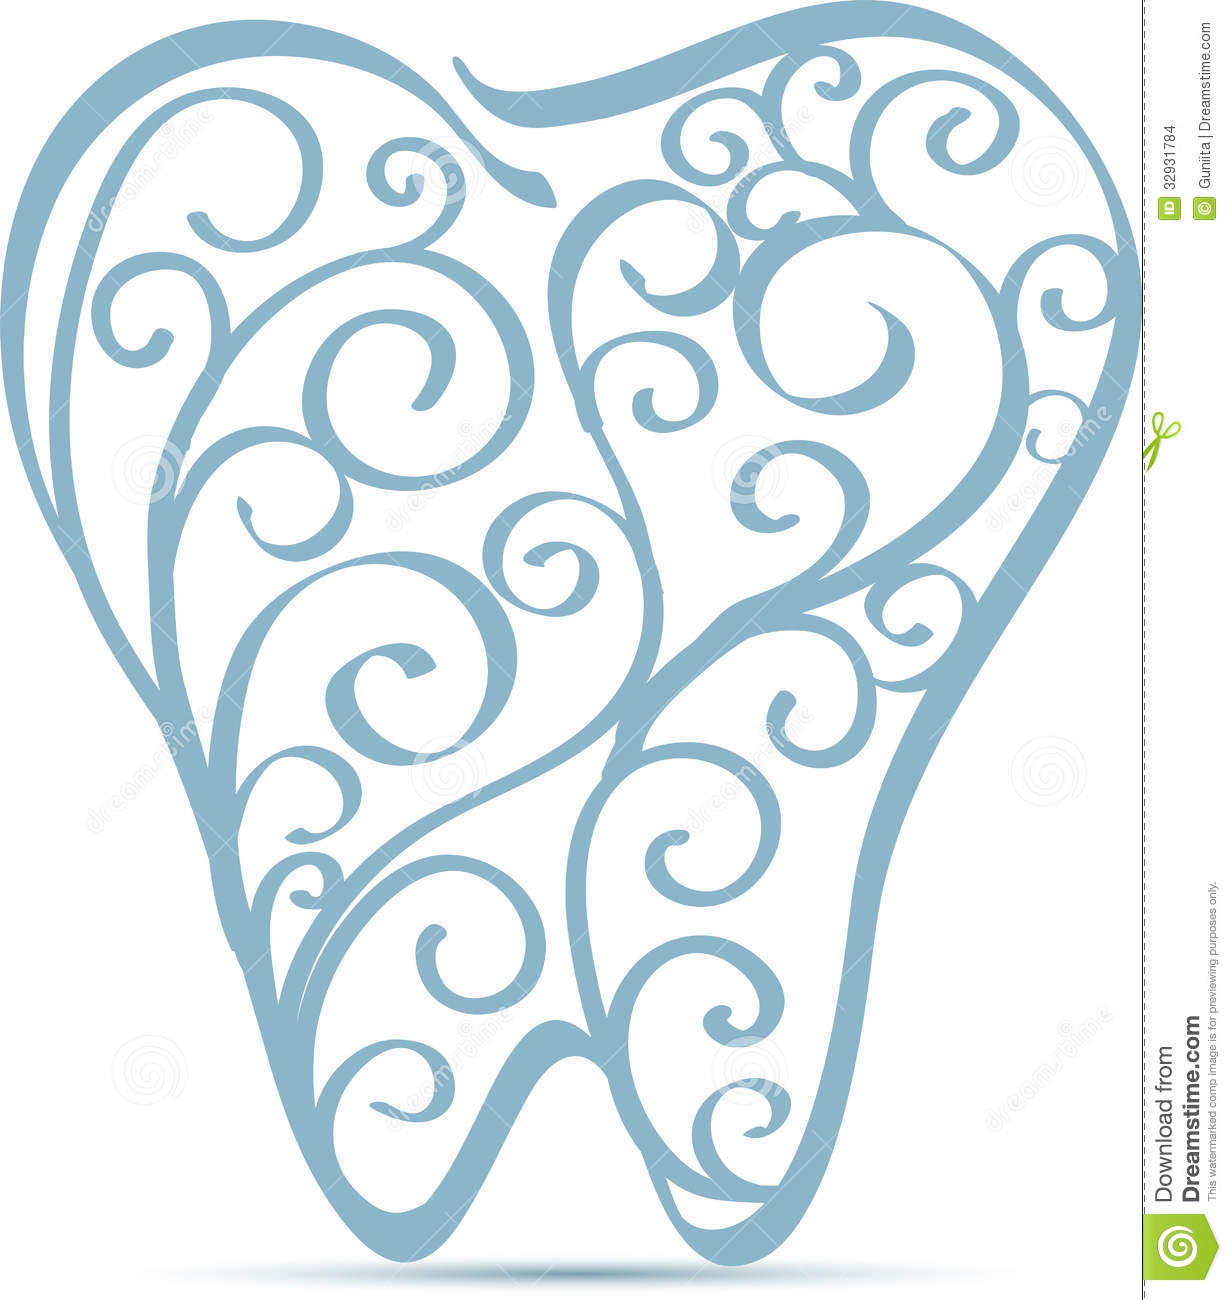 Abstract tooth design. Beautiful design with swirl elements.